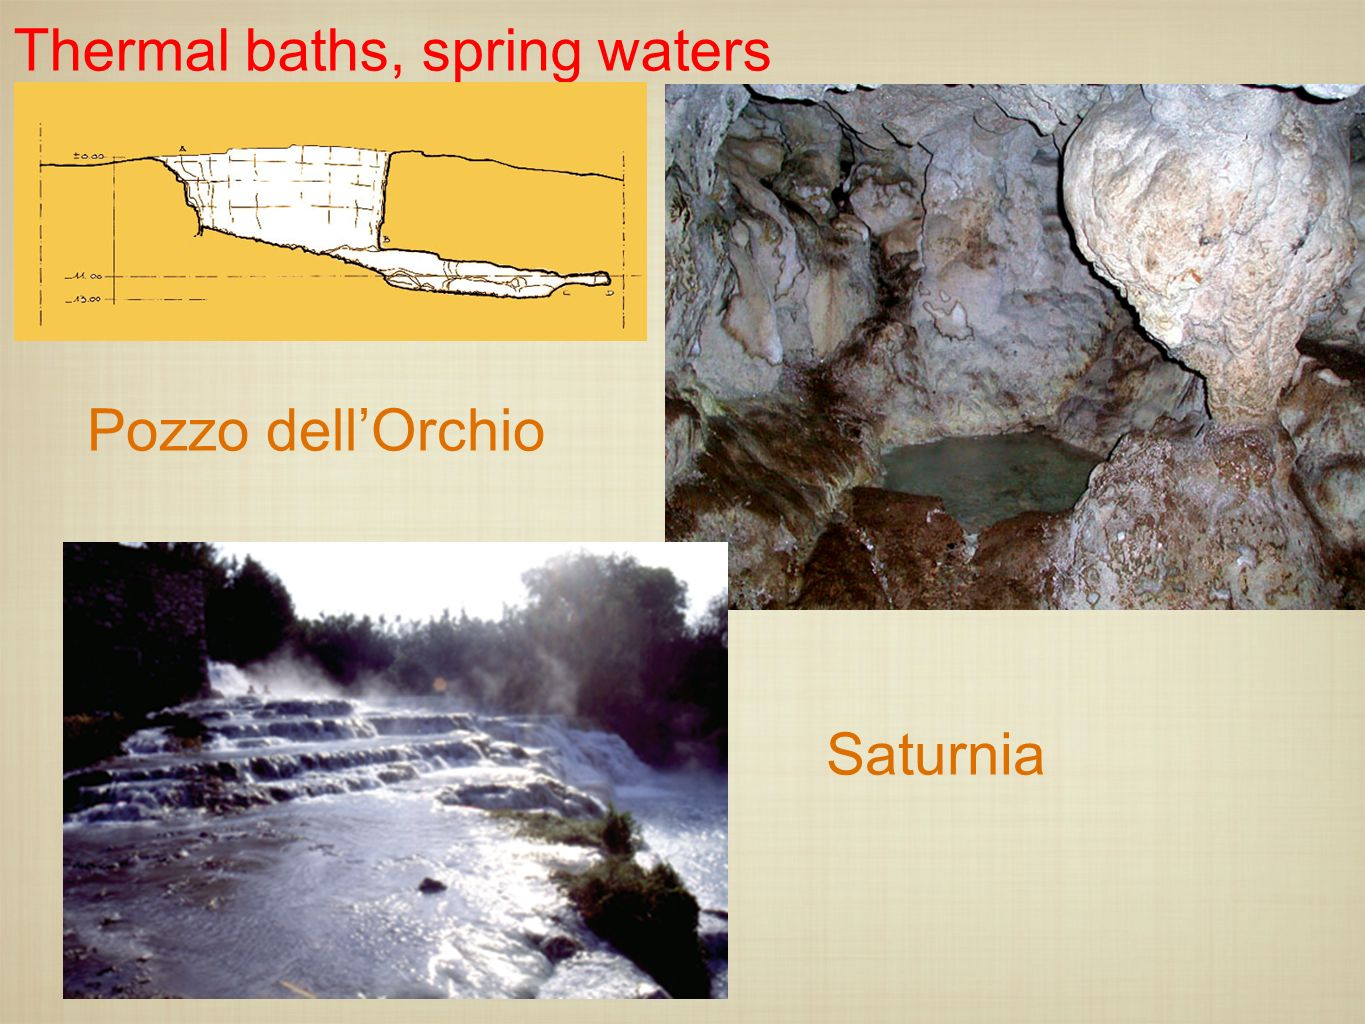 Thermal baths, spring waters